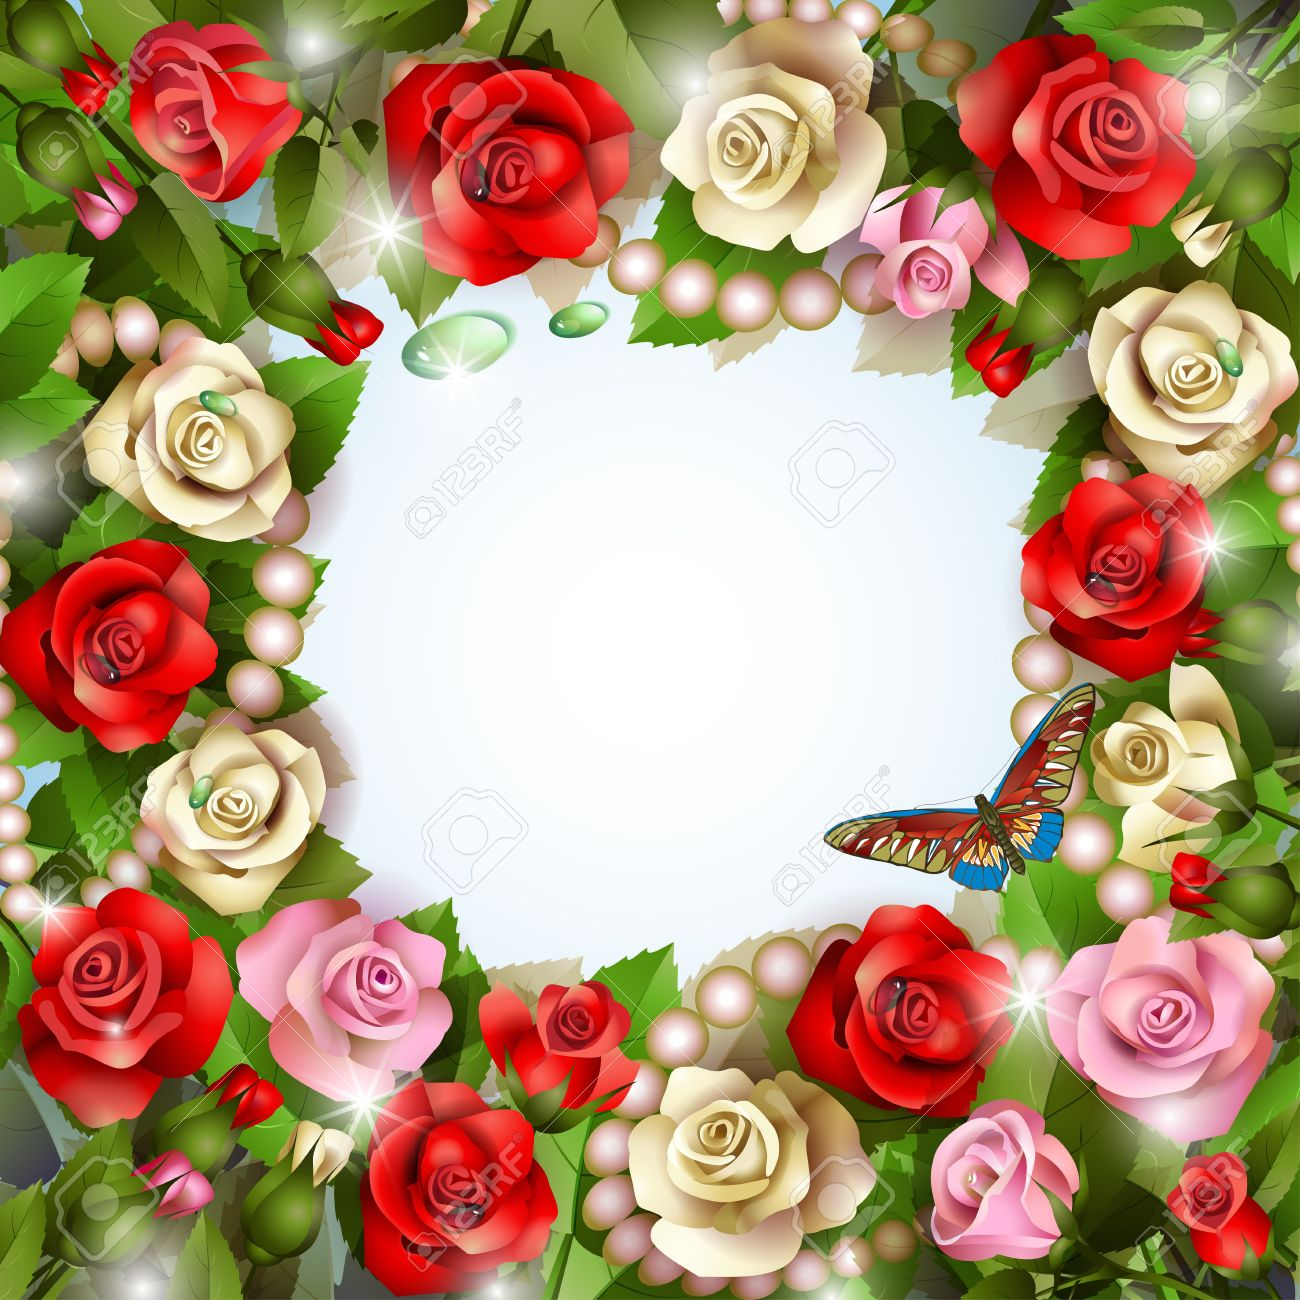 Beautiful background with roses, pearls, drops and butterfly Stock Vector - 14704879